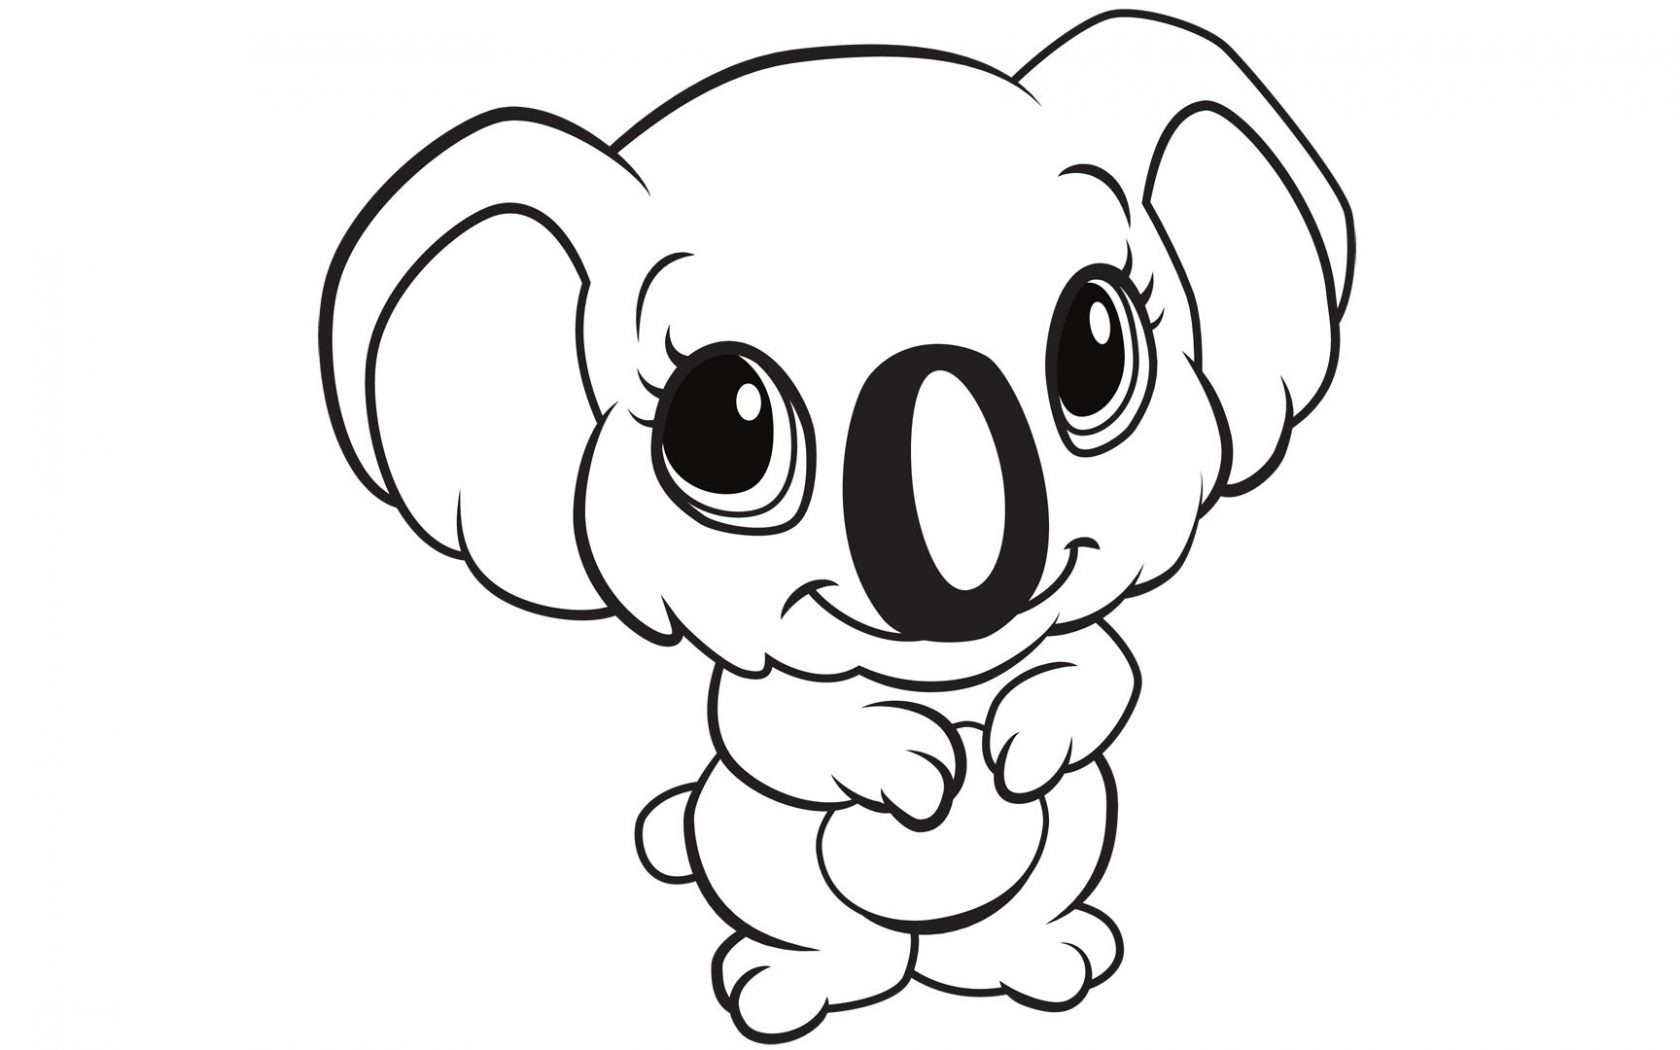 coloring pages for free animals - photo#21